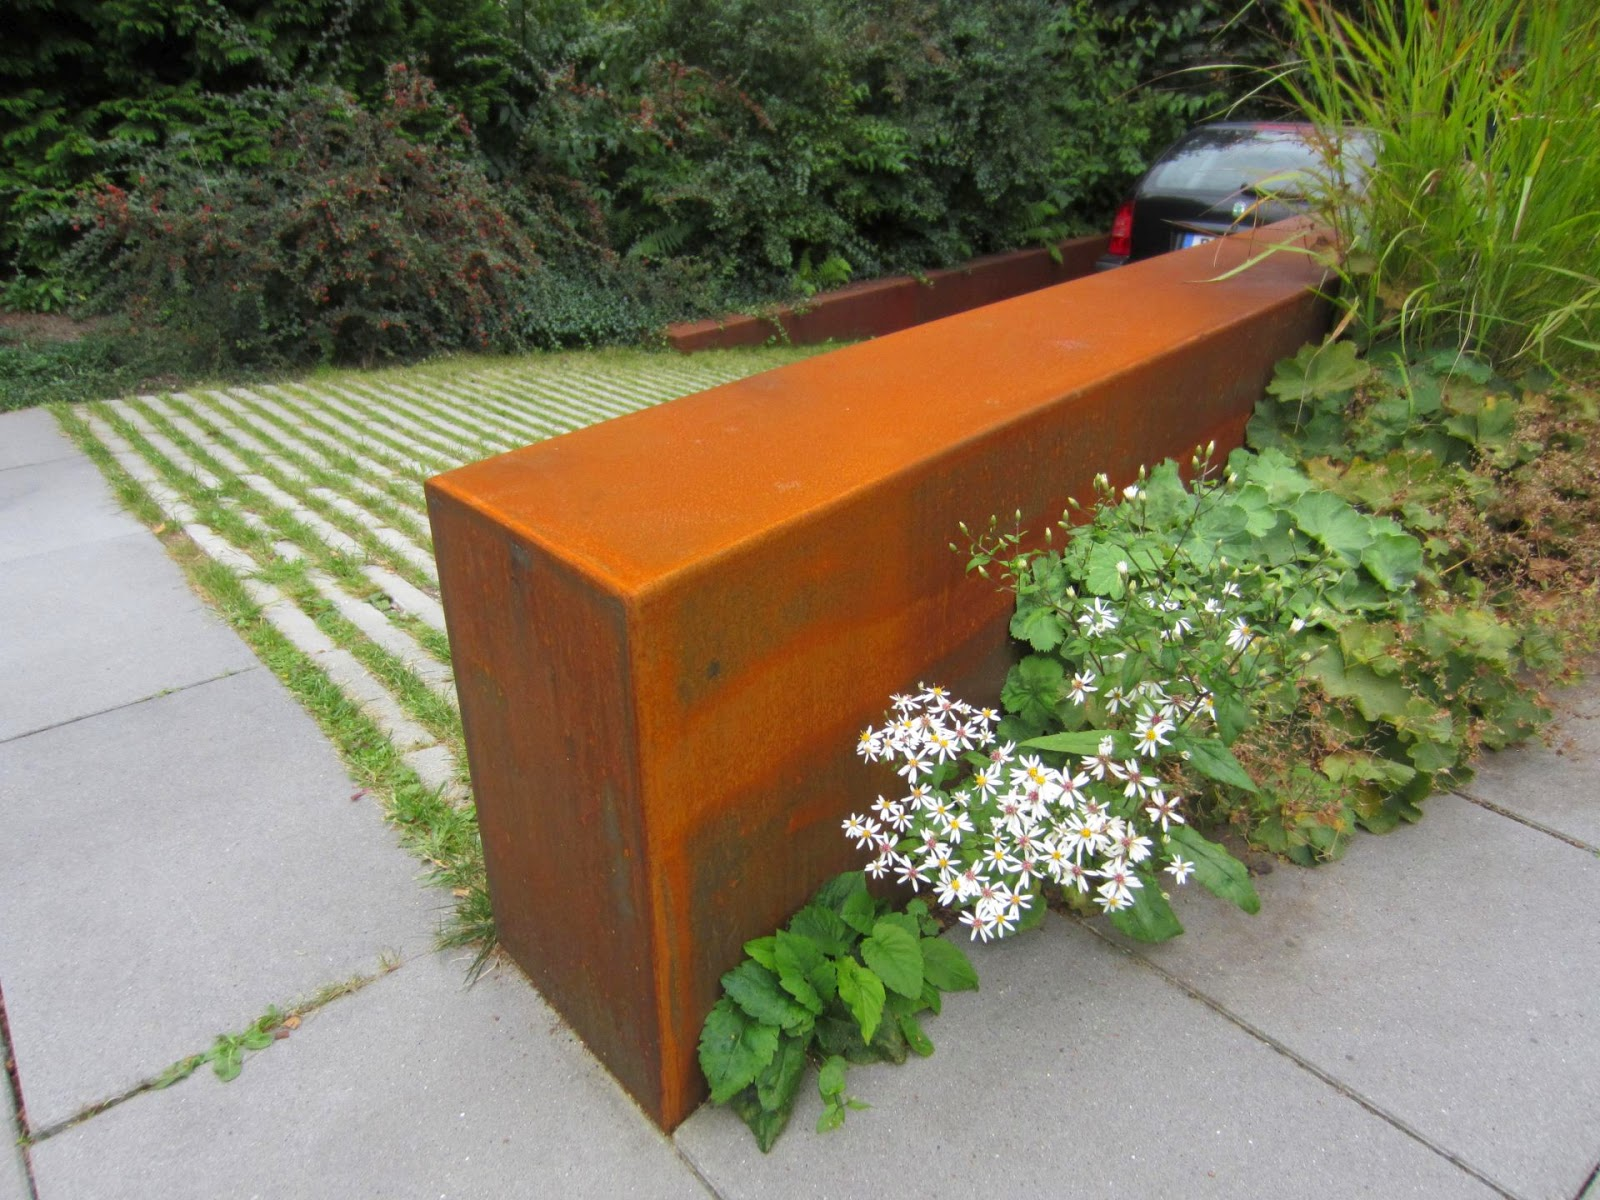 corten patinax verkleidungen an mauern einer garagenzufahrt fr bel metallbau. Black Bedroom Furniture Sets. Home Design Ideas